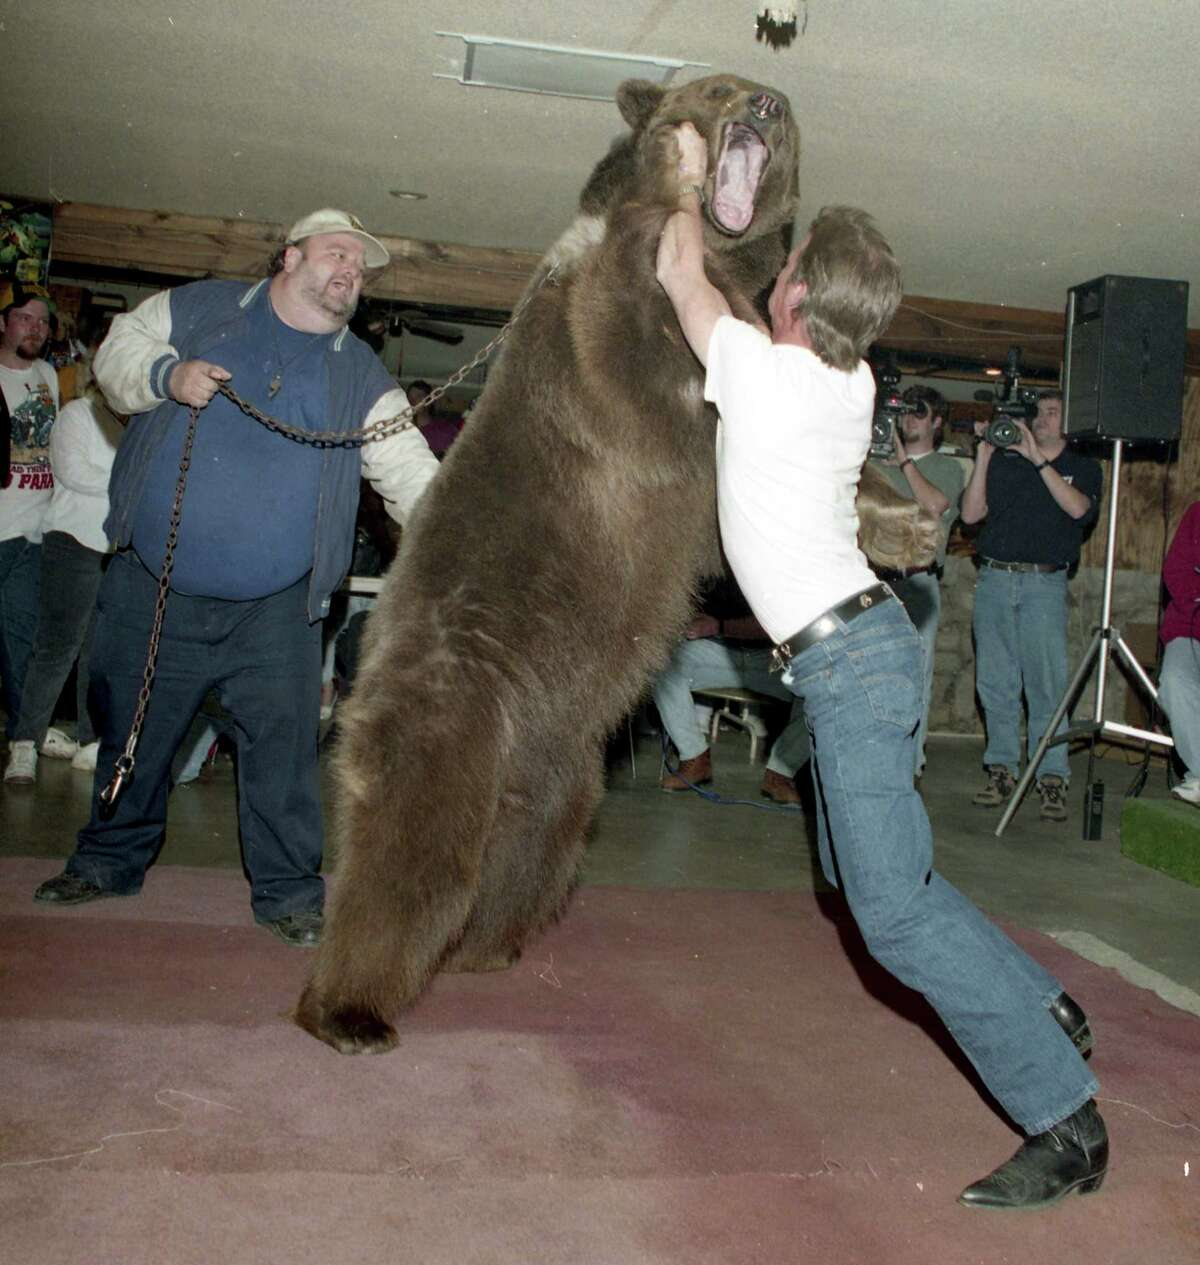 TIL: In this 1996 photo, a man wrestles a bear named Terrible Ted at the Ponderosa Club in New Hope, Ala. Bear wrestling was, for many years, considered by many to be an entertaining test of one's brute strength. Others, however, criticized it as animal cruelty. (William McCormick/AL.com via AP)